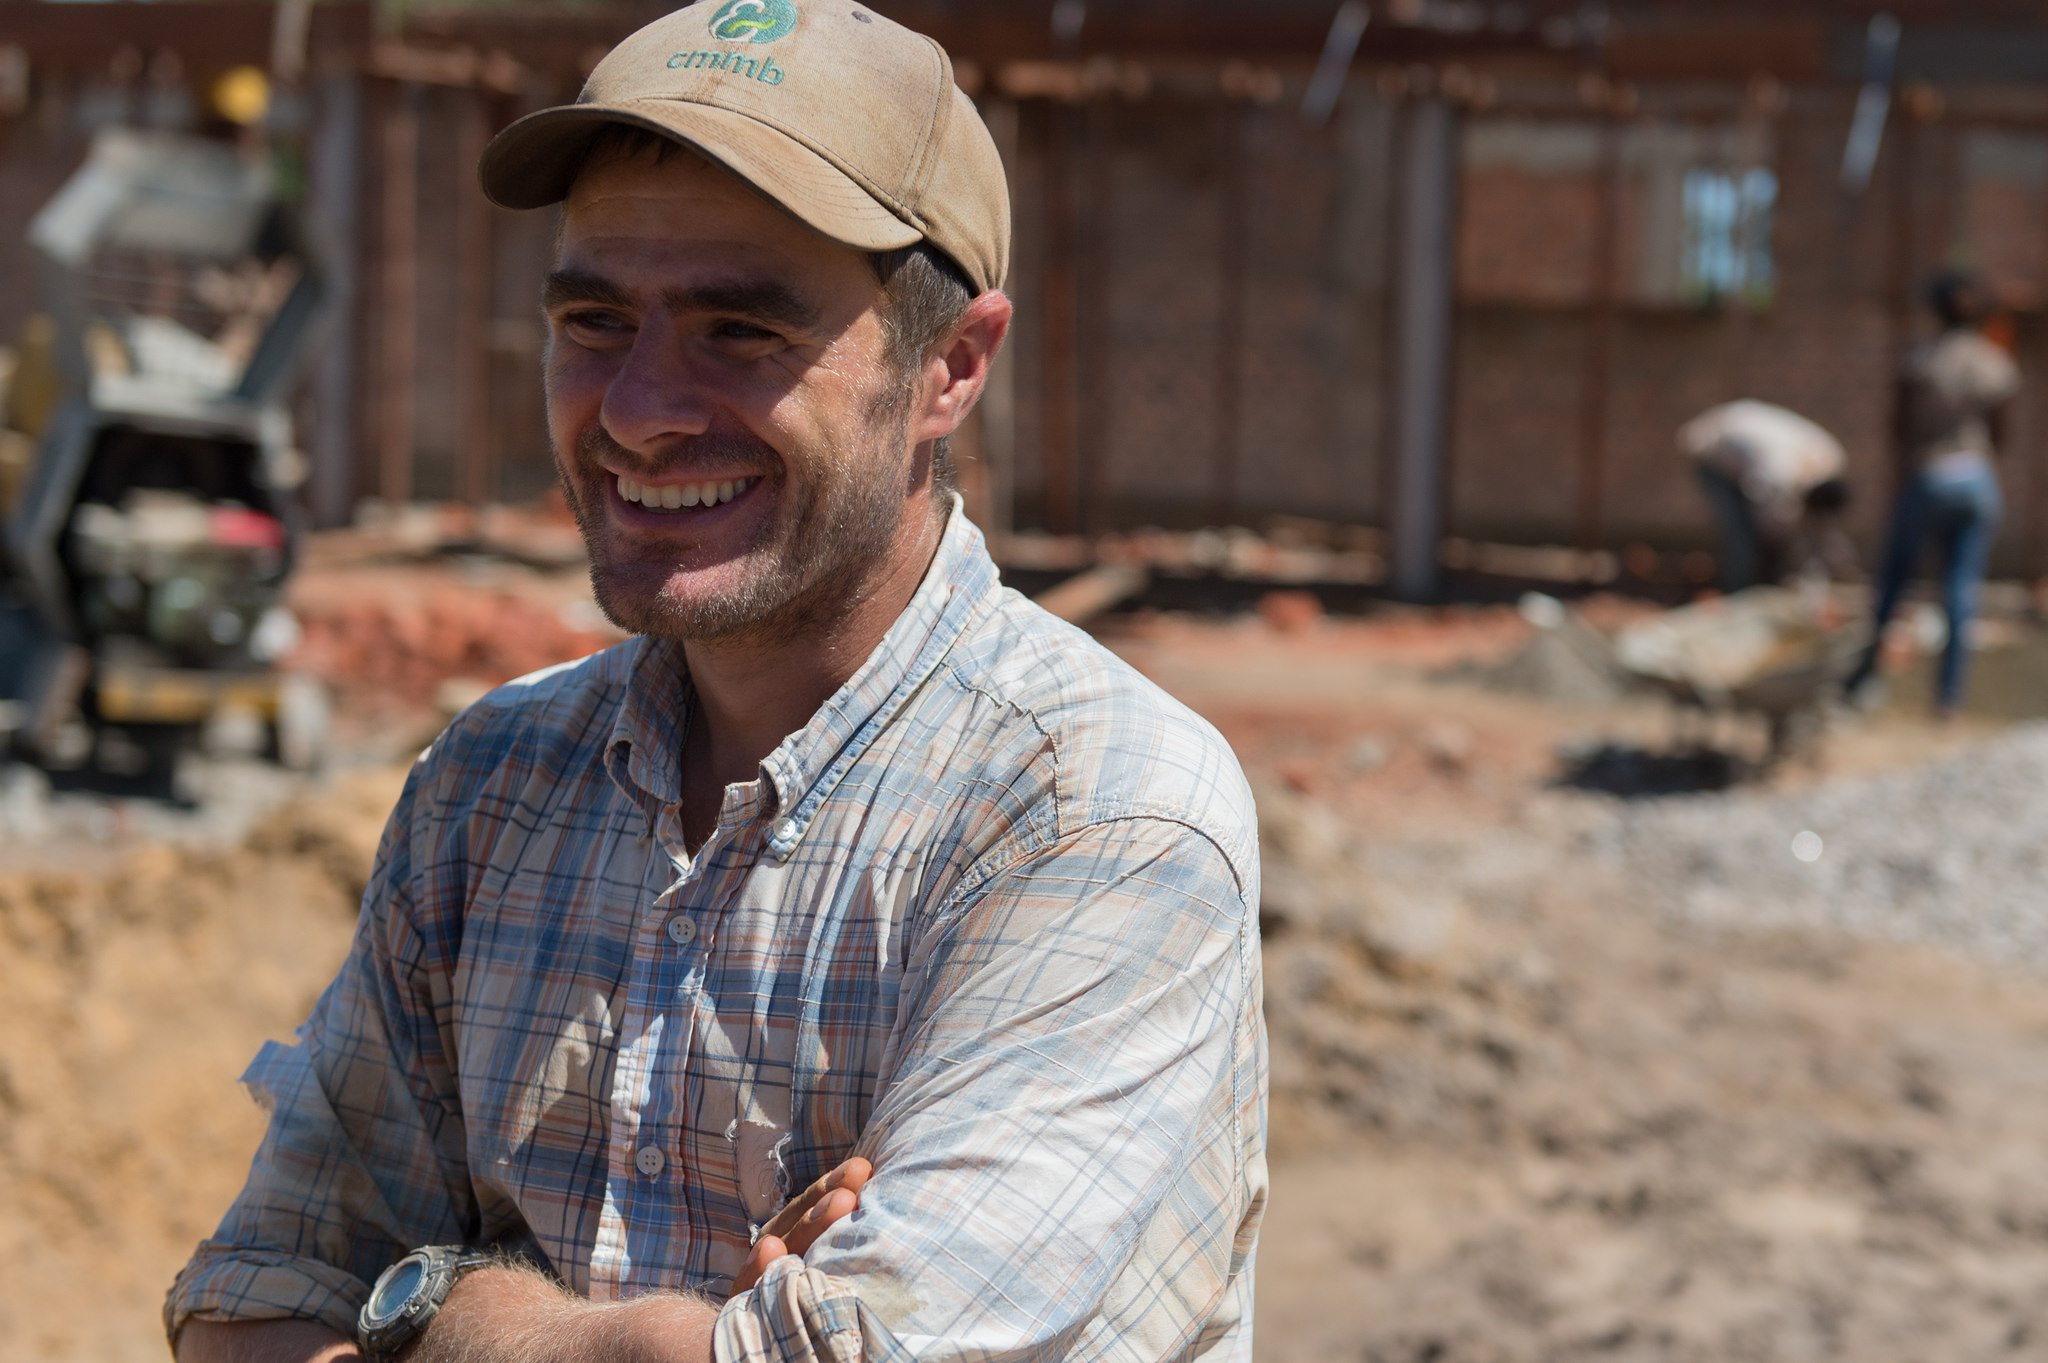 CMMB volunteer and engineer, Martin Rubino is the project manager for the Nzara construction